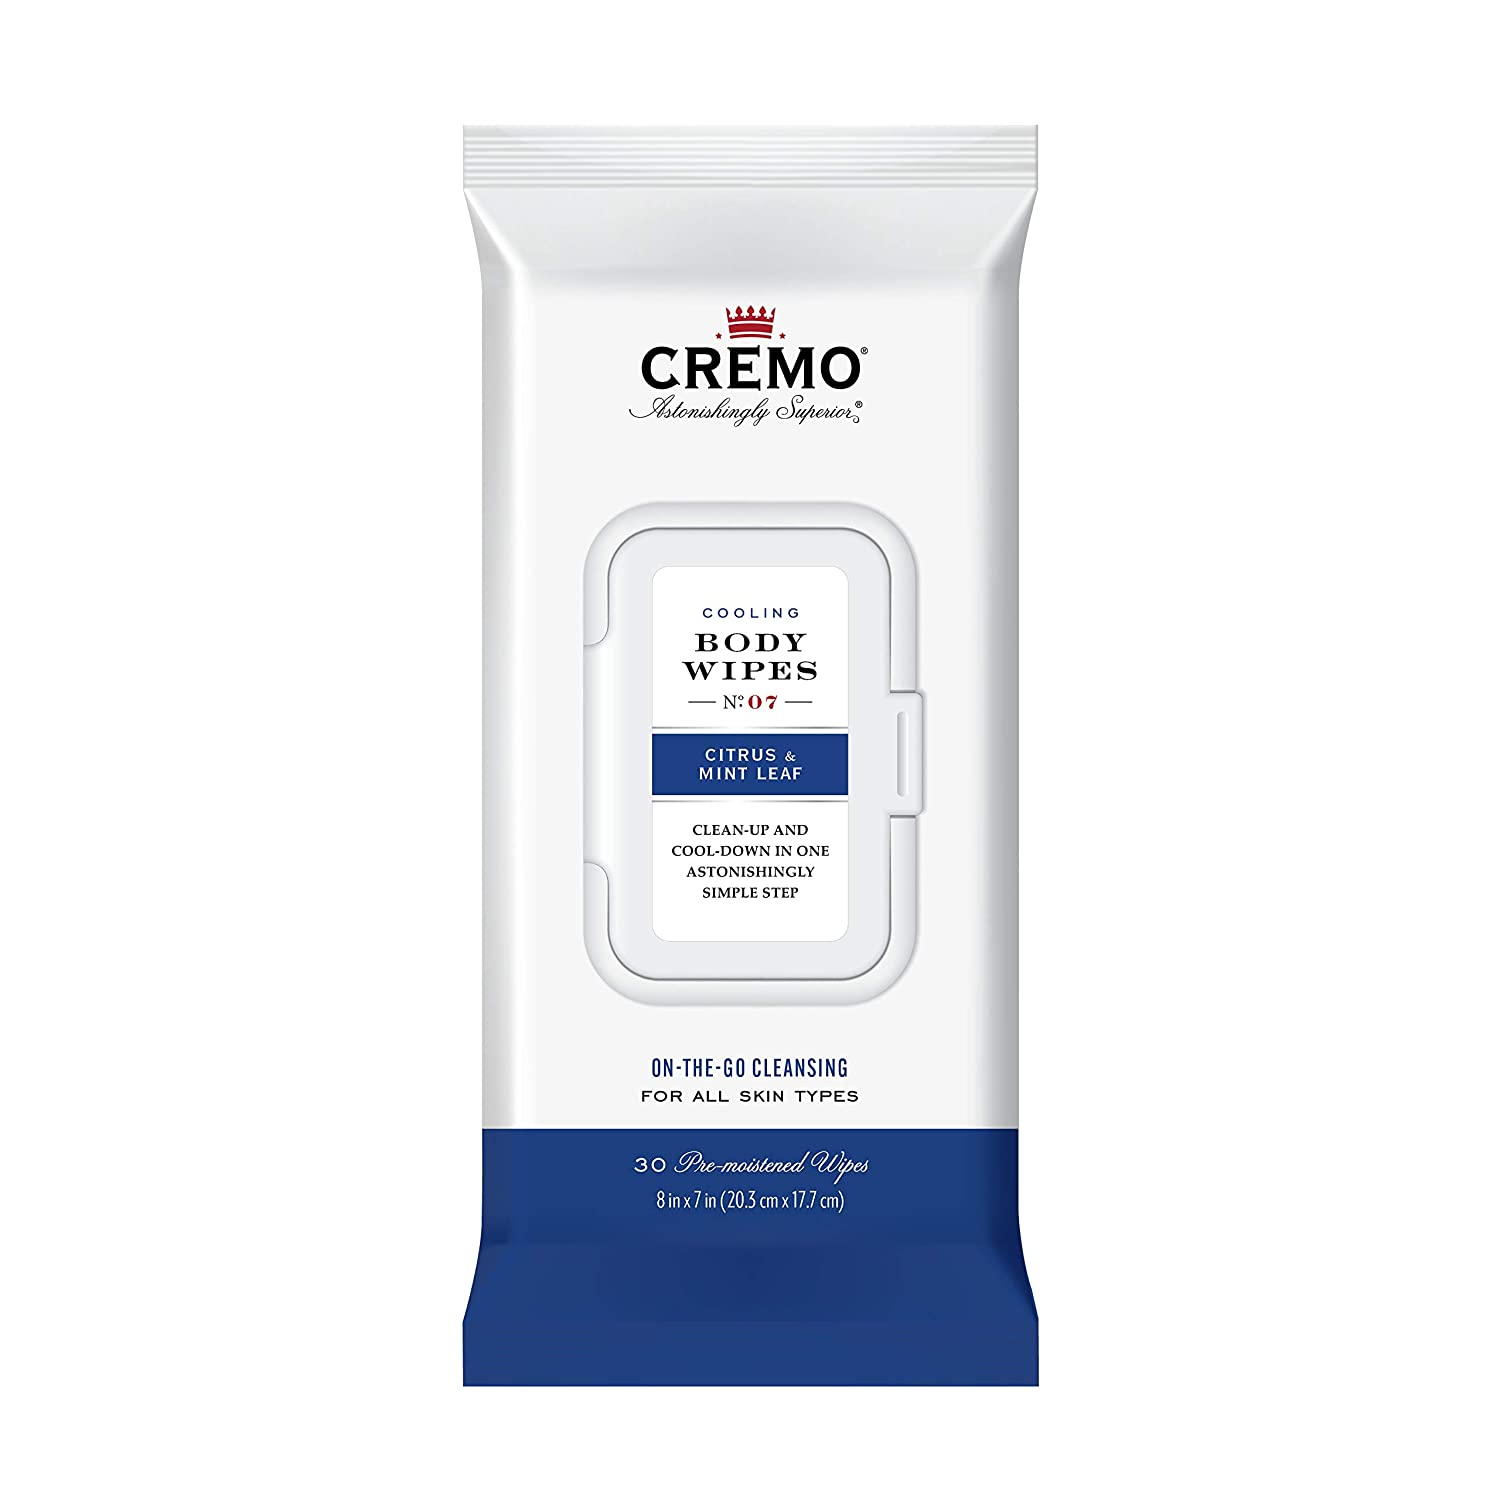 Cremo Cooling Citrus & Mint Leaf Men's Body Wipes, Clean-up and Cool-Down In One Astonishingly Simple Step, 30 Count, 2-Pack